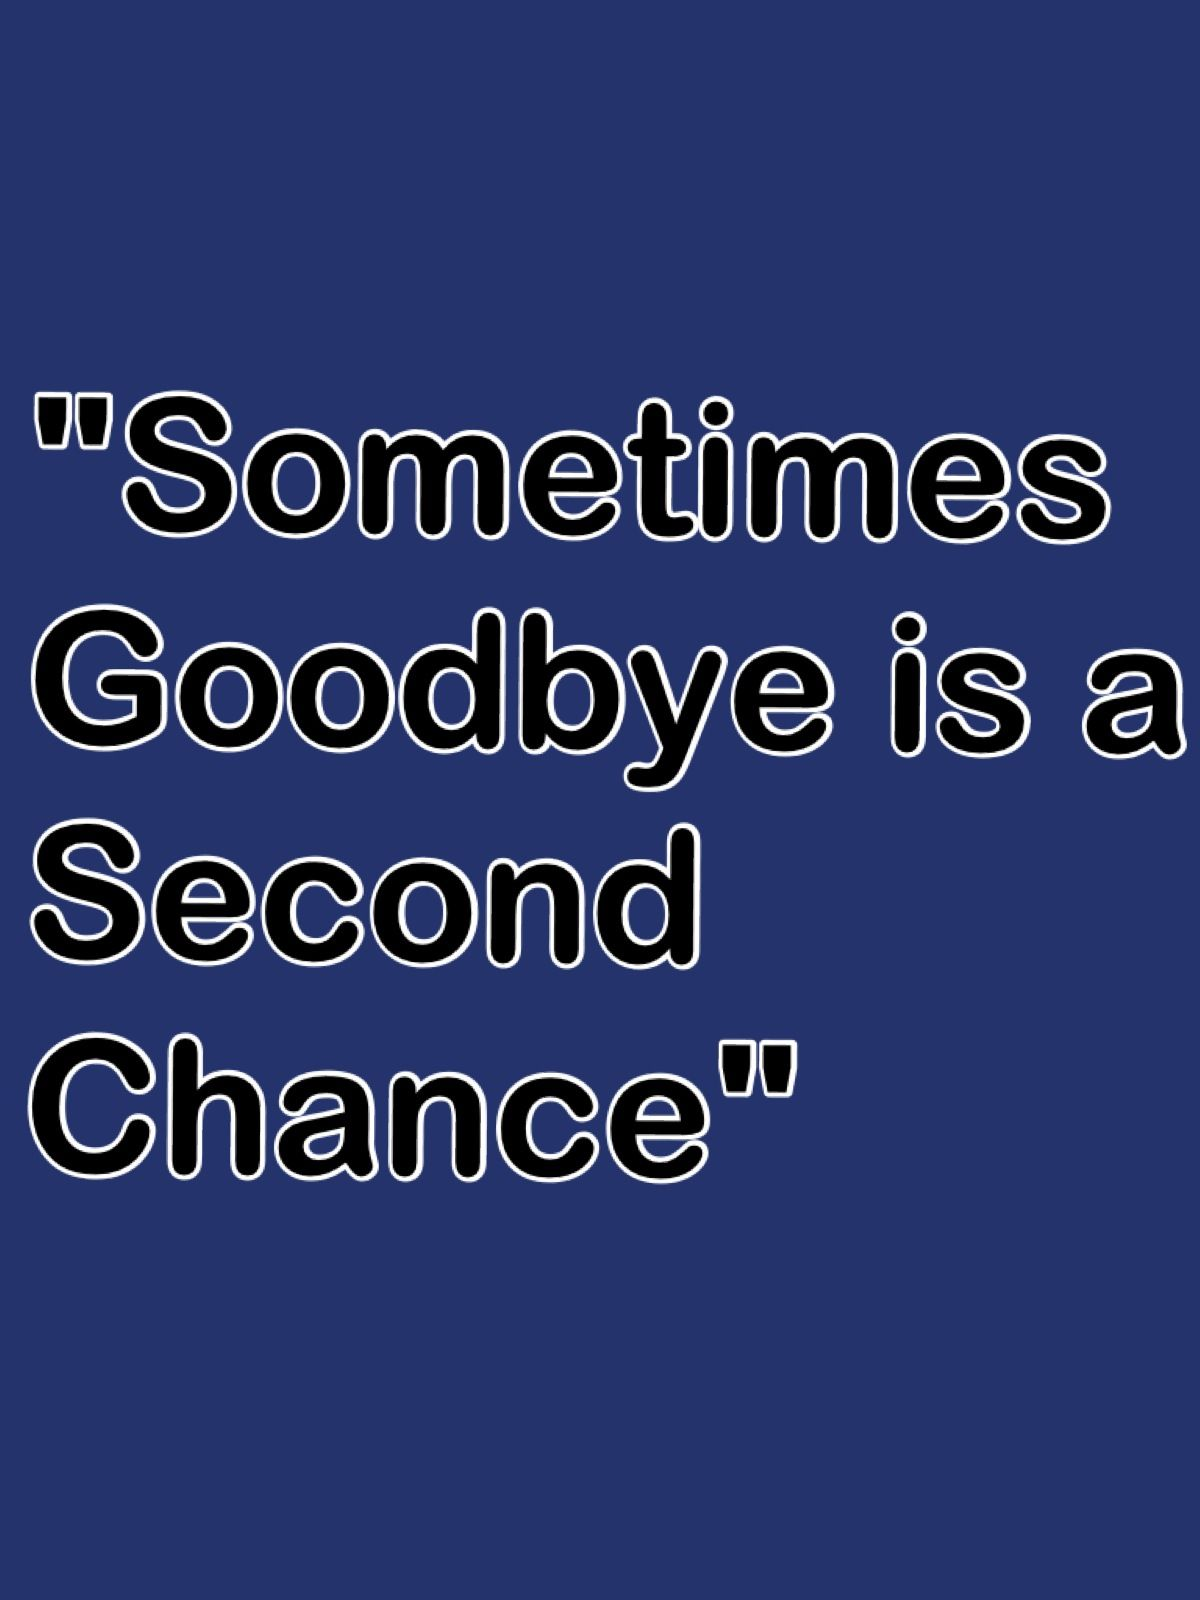 Shinedown second chance band quotes pinterest songs music shinedown second chance hexwebz Images